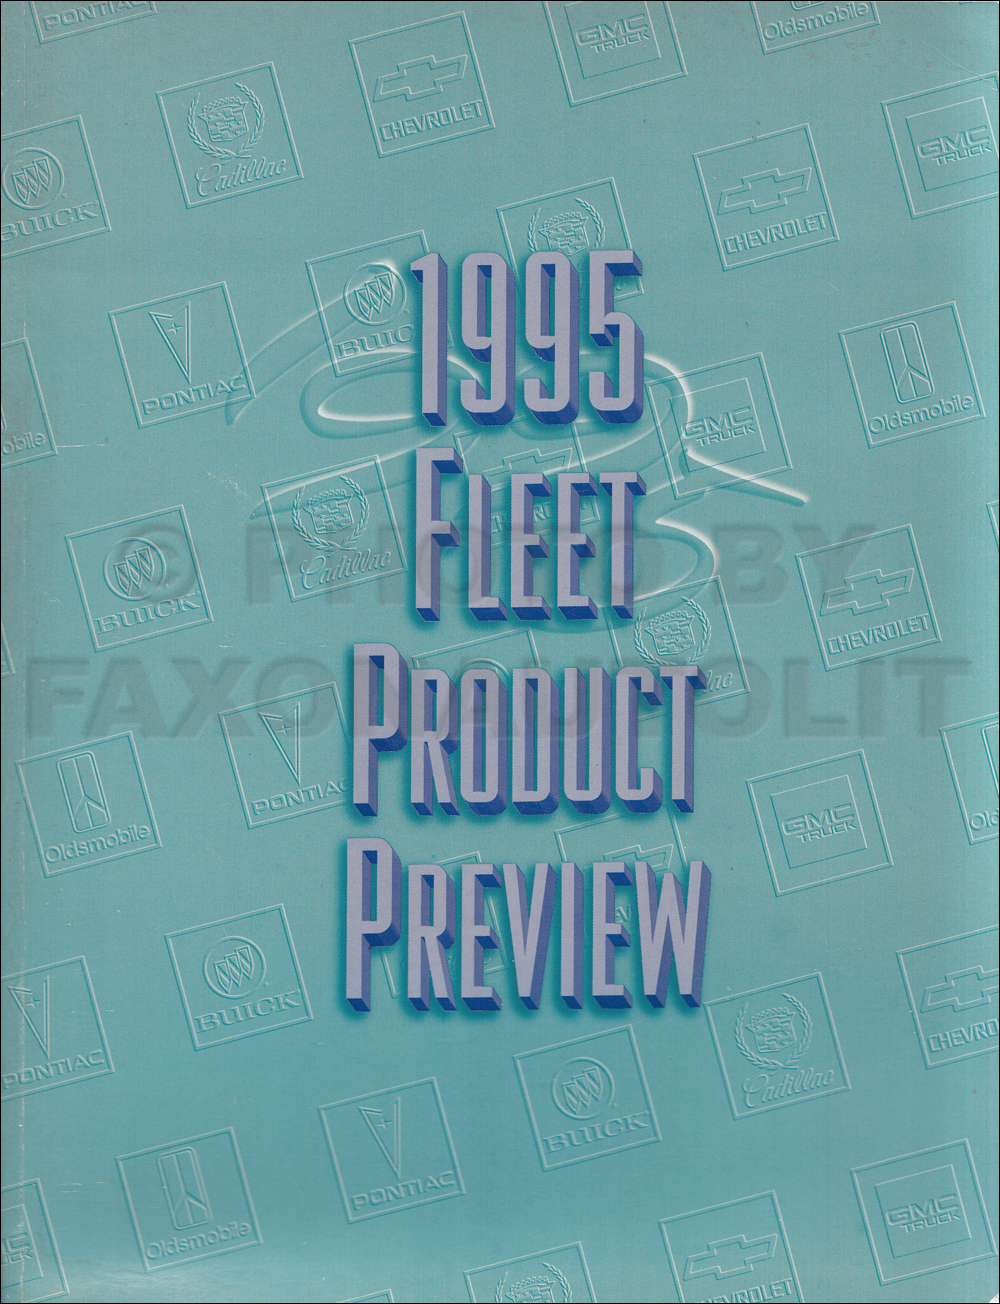 1995 General Motors Fleet Buyers Guide Preview Original GM Dealer Album